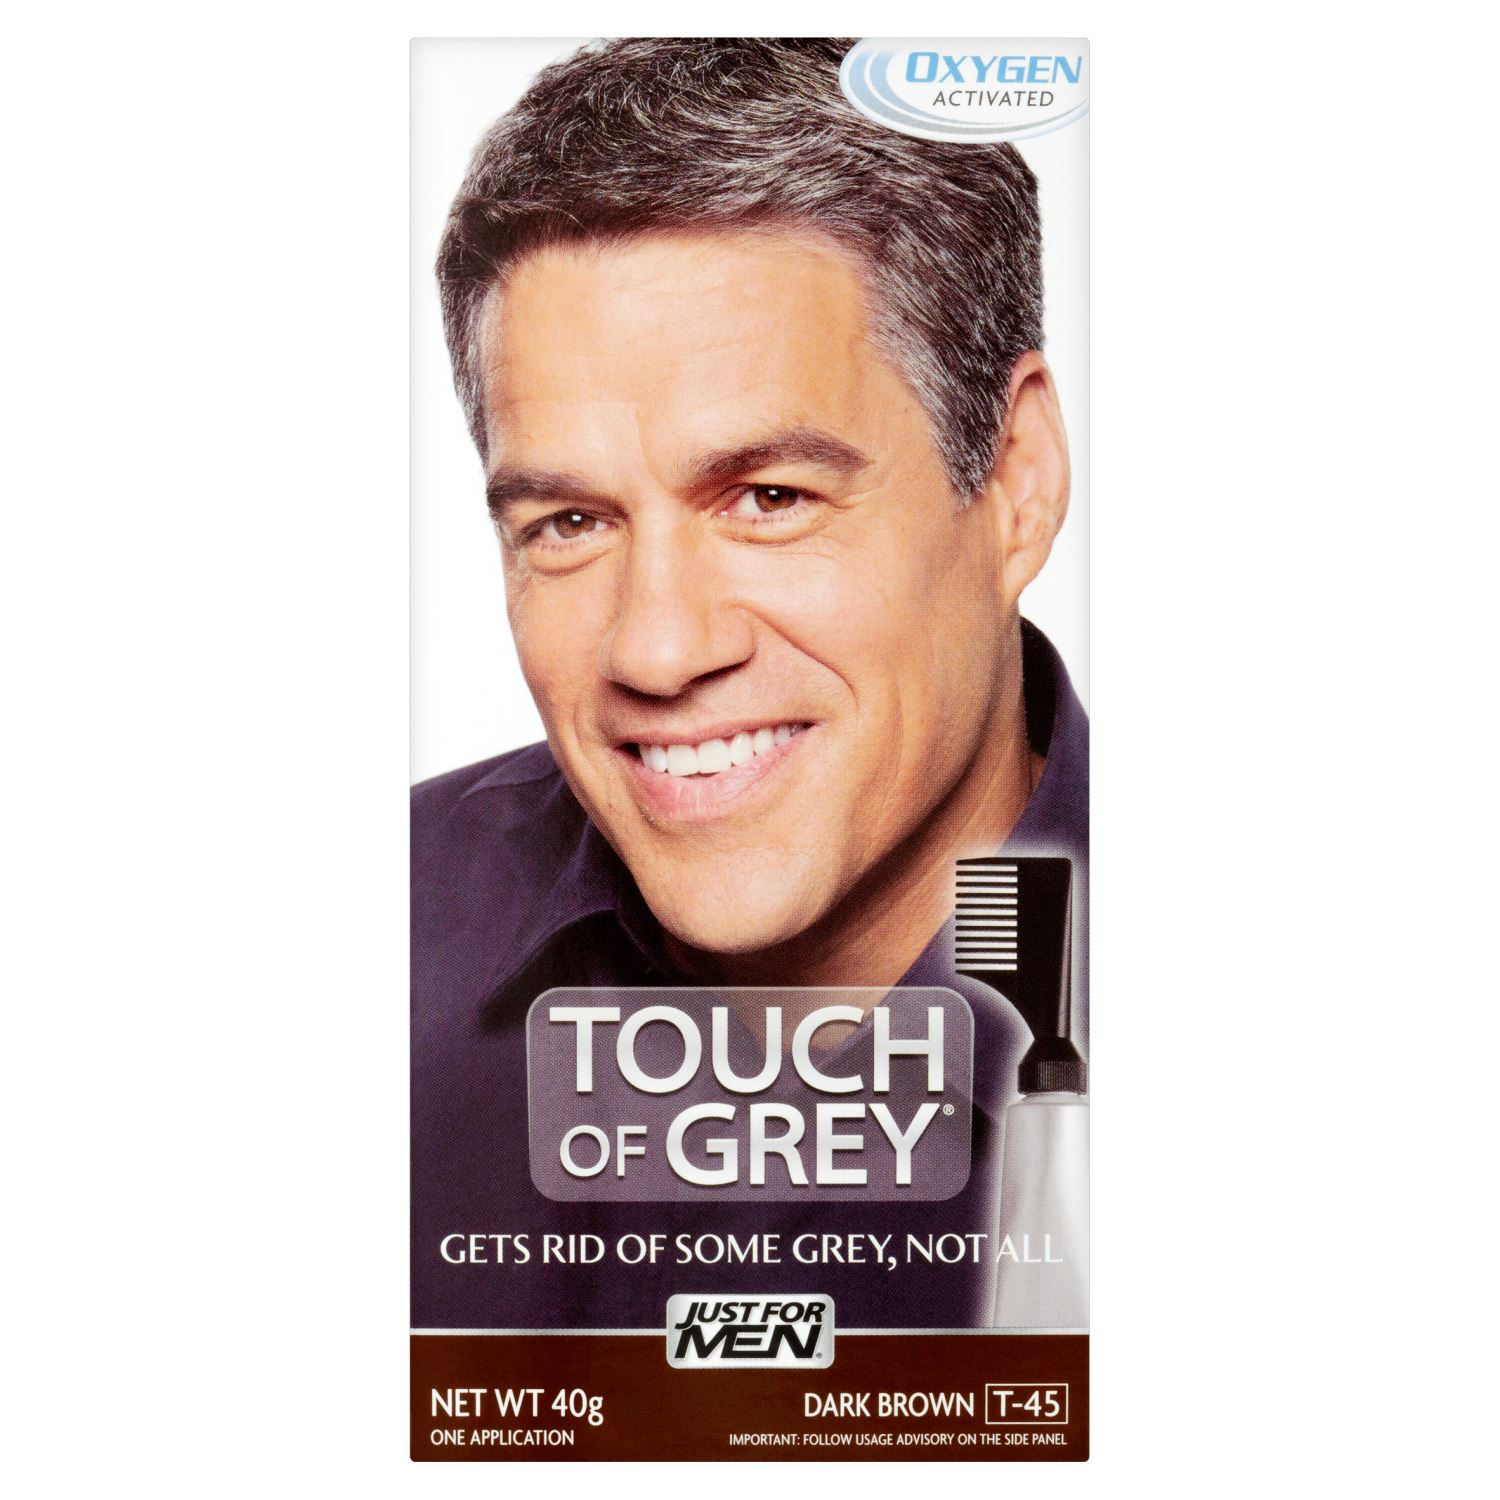 Just For Men Touch Of Grey Hair Dye Colourant Various Shades New